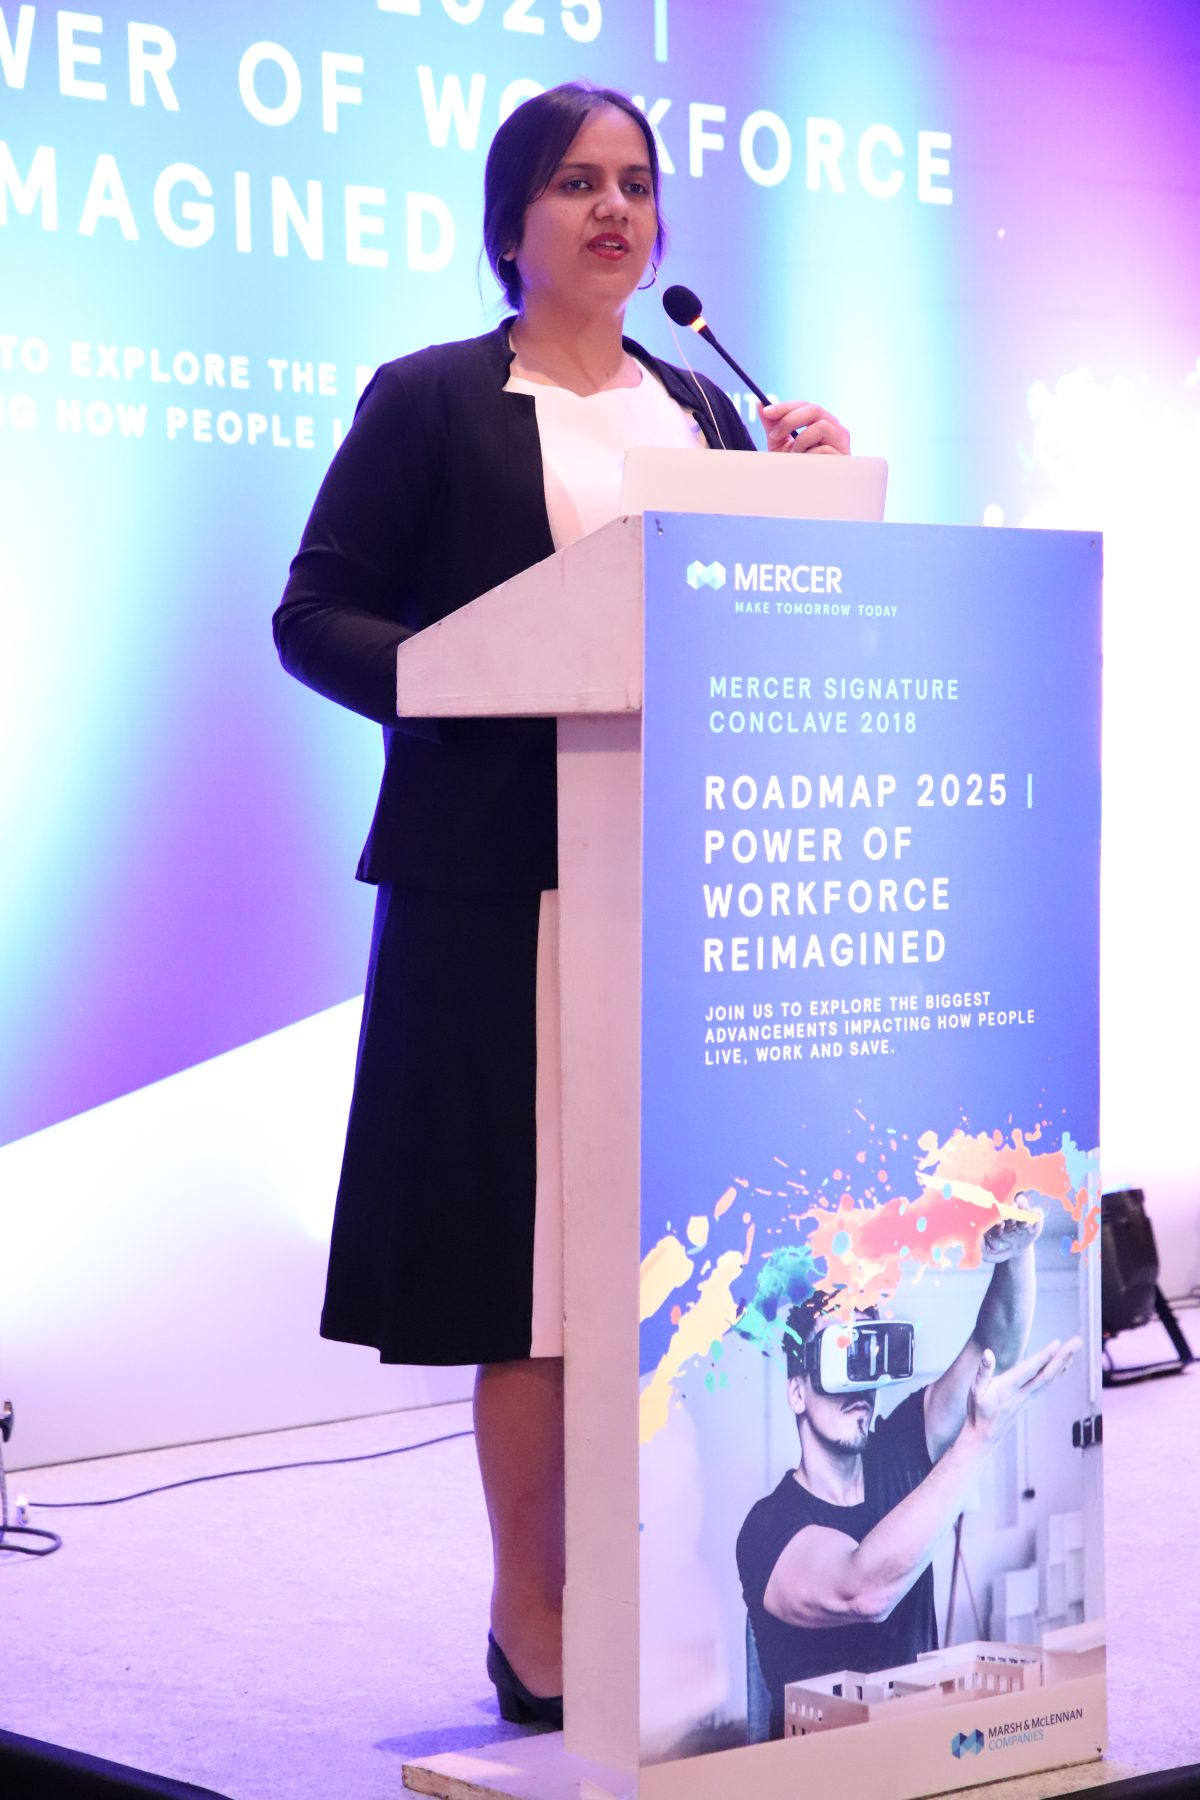 Mercer Keynote Address-Mumbai-December-2018: A full length image of Nidhi standing and speaking behind a podium. She is wearing a white and black dress and a black jacket. The podium is blue in colour and has the following words written on it: Roadmap 2025 Power of Workforce Reimagined.